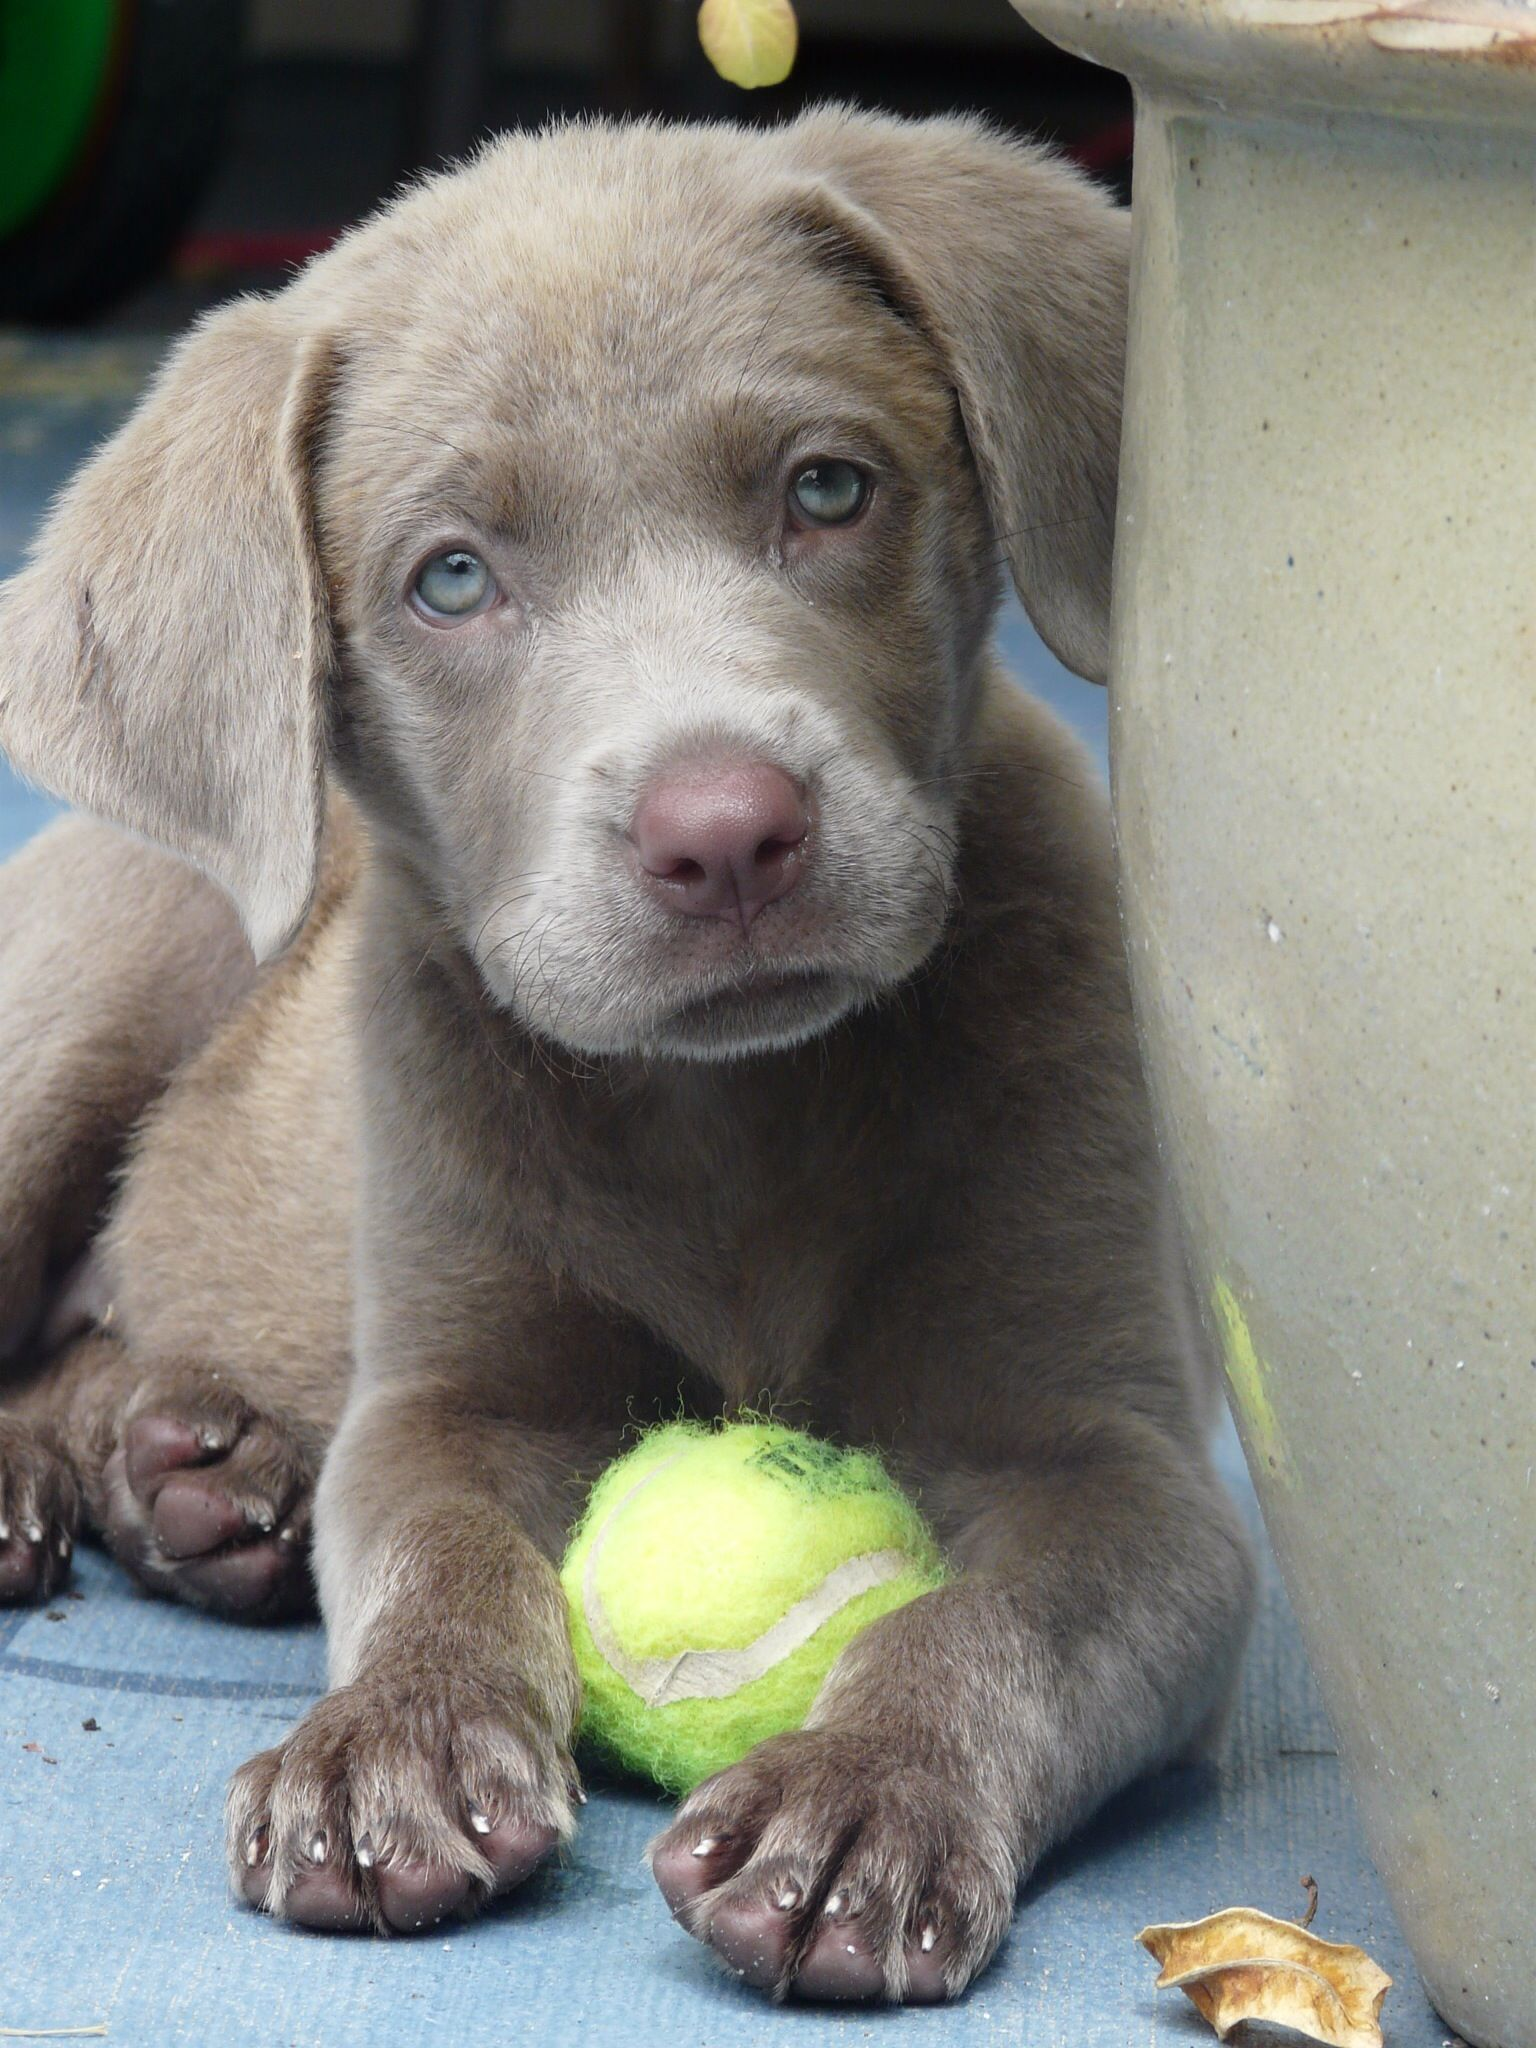 Silver Labrador Retrievers For Sale Silver Lab Puppies Charcoal Labs Silver Lab Puppies S Labrador Retriever Silver Labrador Retriever Silver Labrador Puppies